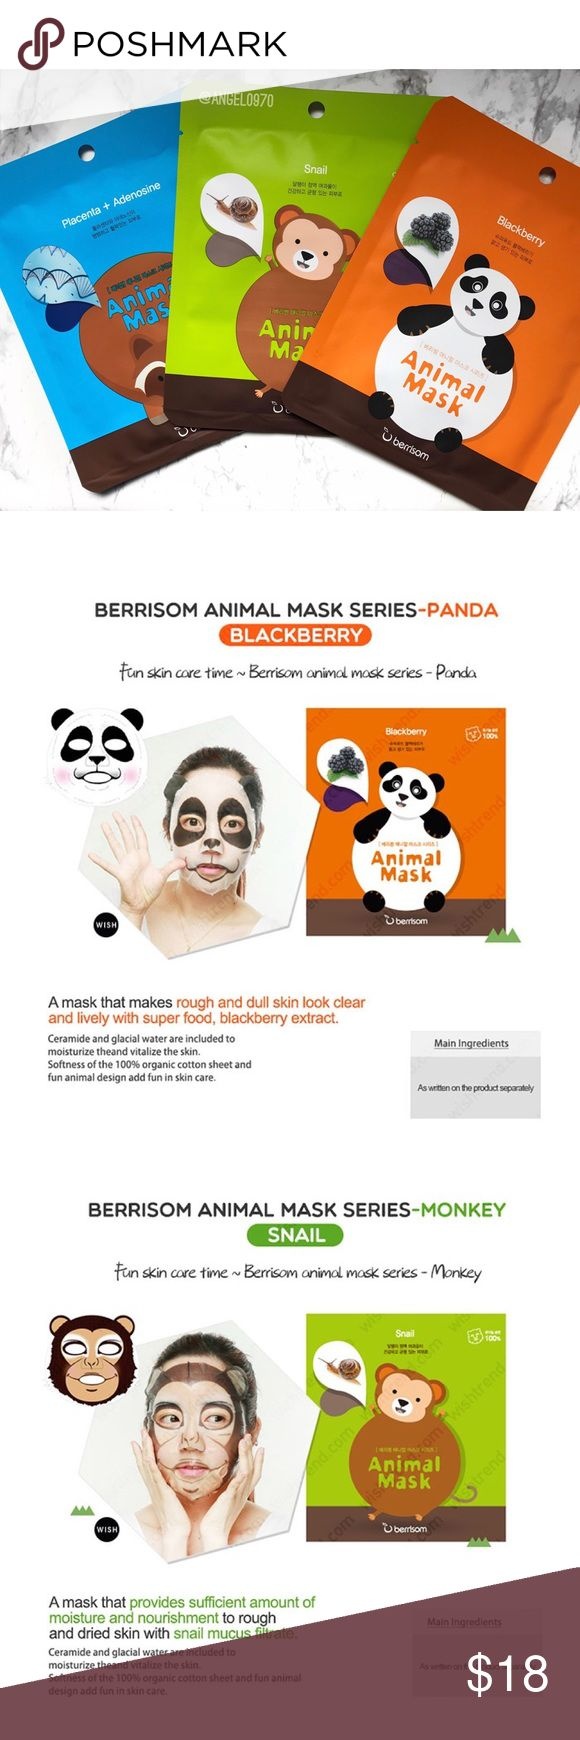 || Korean Animal Print Sheet Mask Bundle 3 brand new Korean Sheet masks that have adorable animal prints on them. Have fun getting skin care benefits while having fun with the animal characters mask!  Korean skin care products are very popular world wide!  Included: Raccoon mask, Monkey mask, and Panda mask  I posted what each mask is for above  No TradesPlease No Lowballing  I do not negotiate pricing in the comments. Please submit a reasonable offer by the offer button. Thank you…